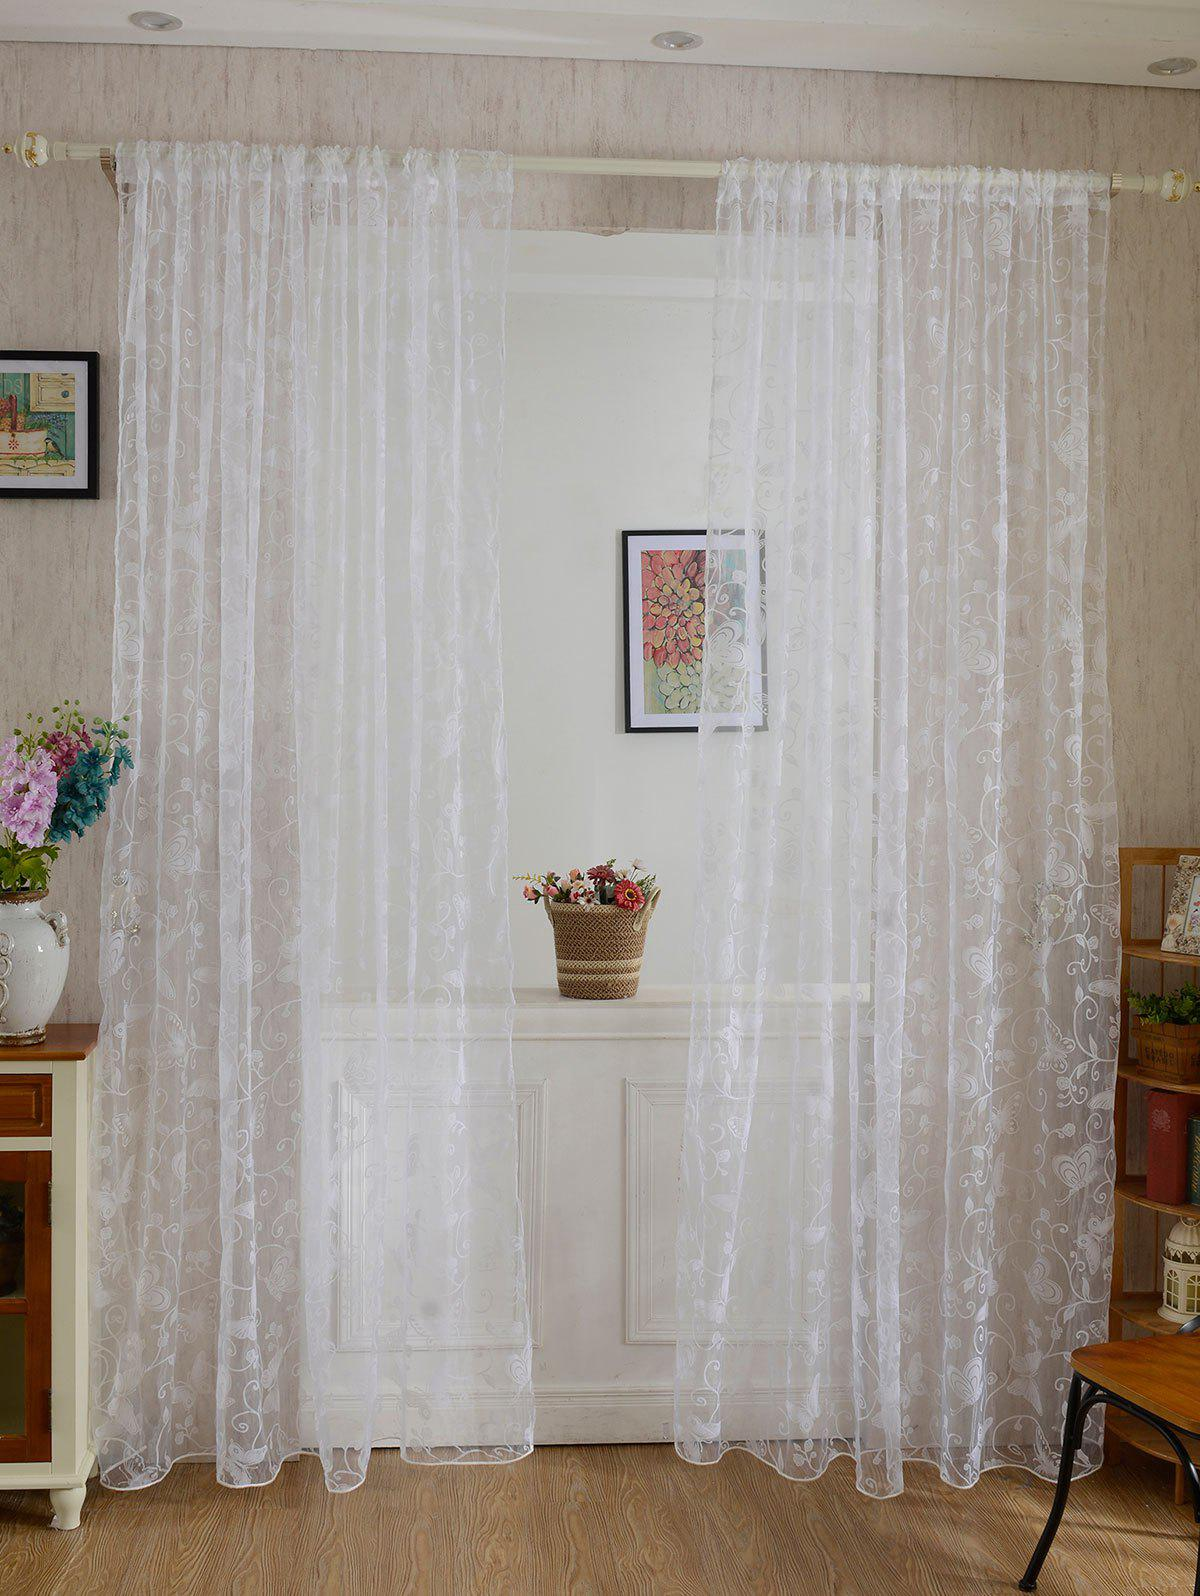 Buy 2 Panels Butterflies Embroidery Window Sheer Tulle Curtain